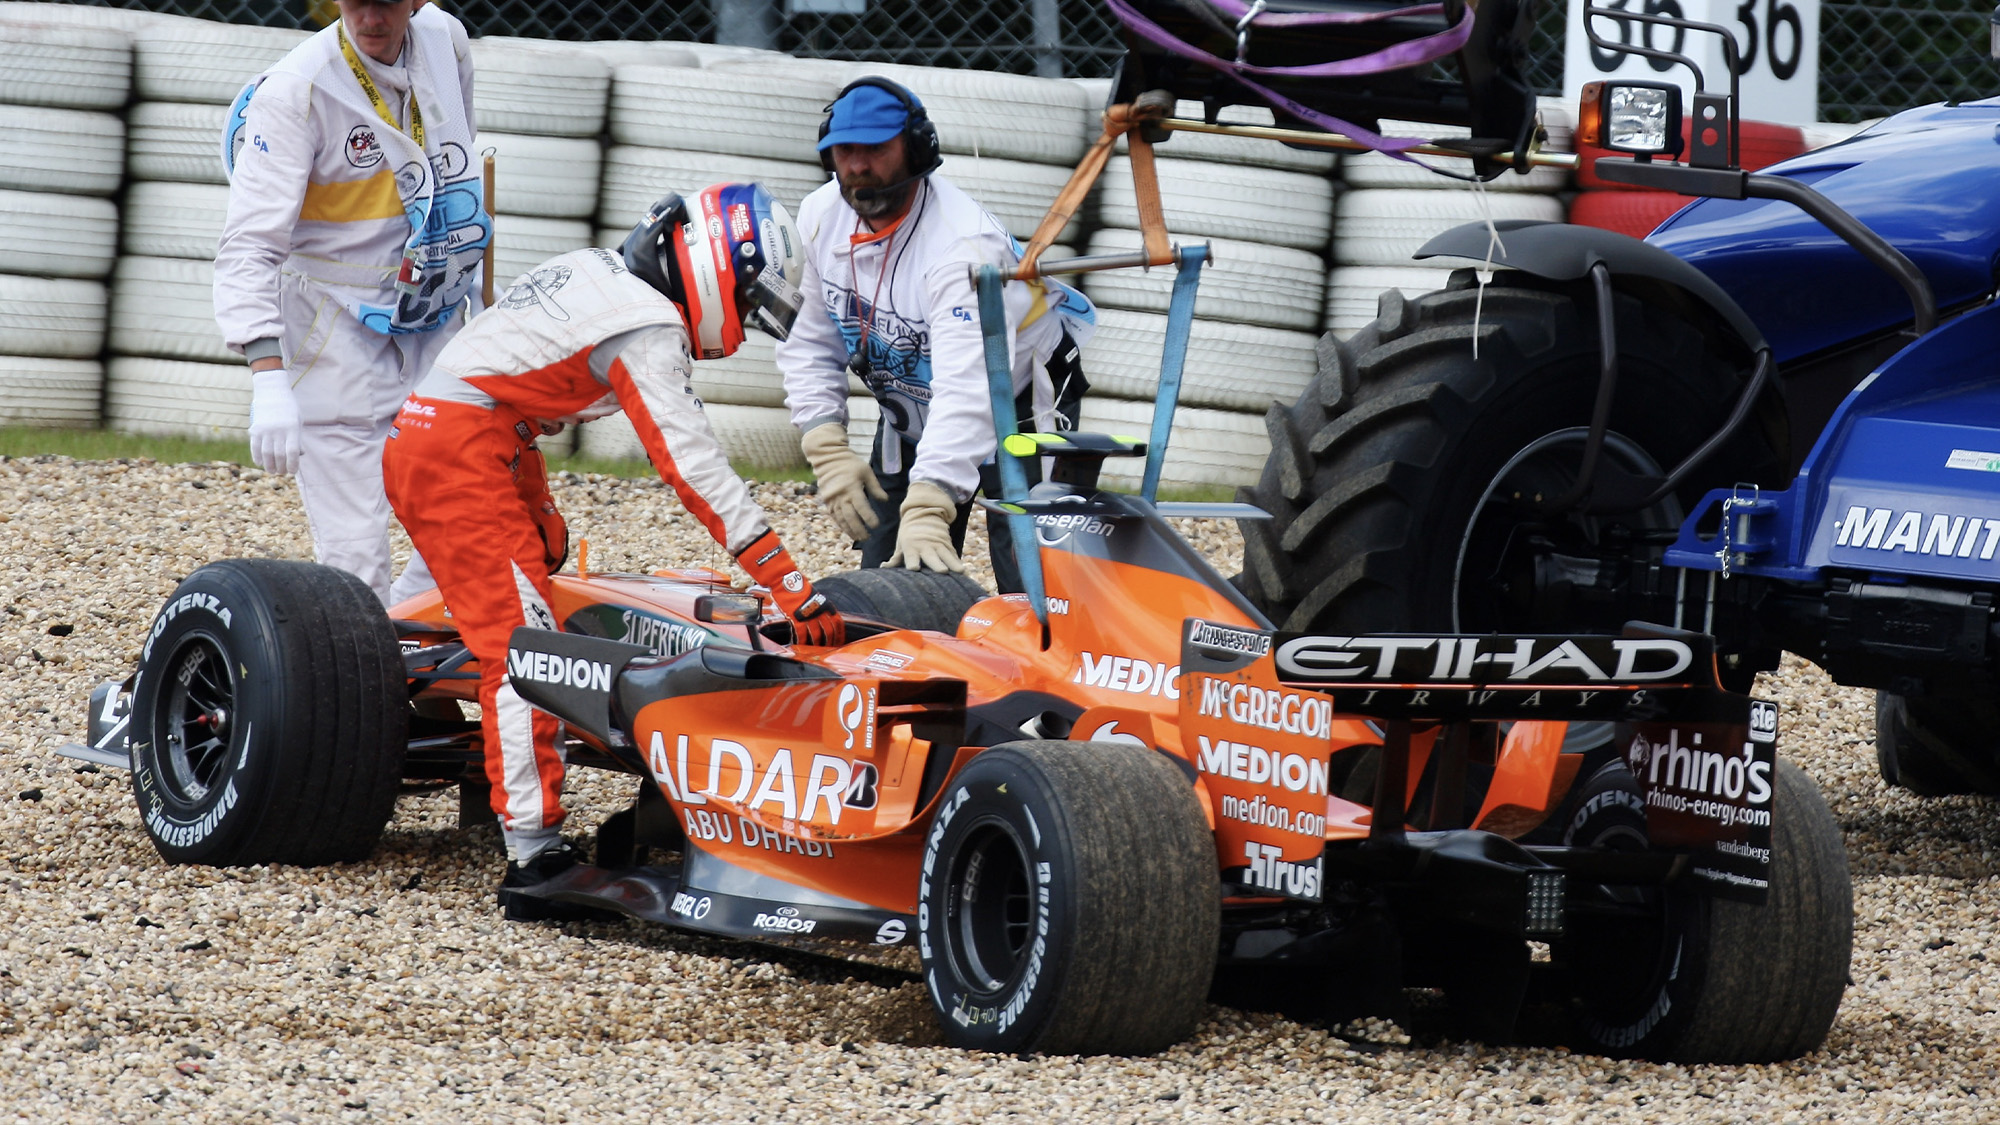 Markus Winkelhock's car in the gravel after retiring from the 2007 European F1 Grand Prix at the Nurburgring